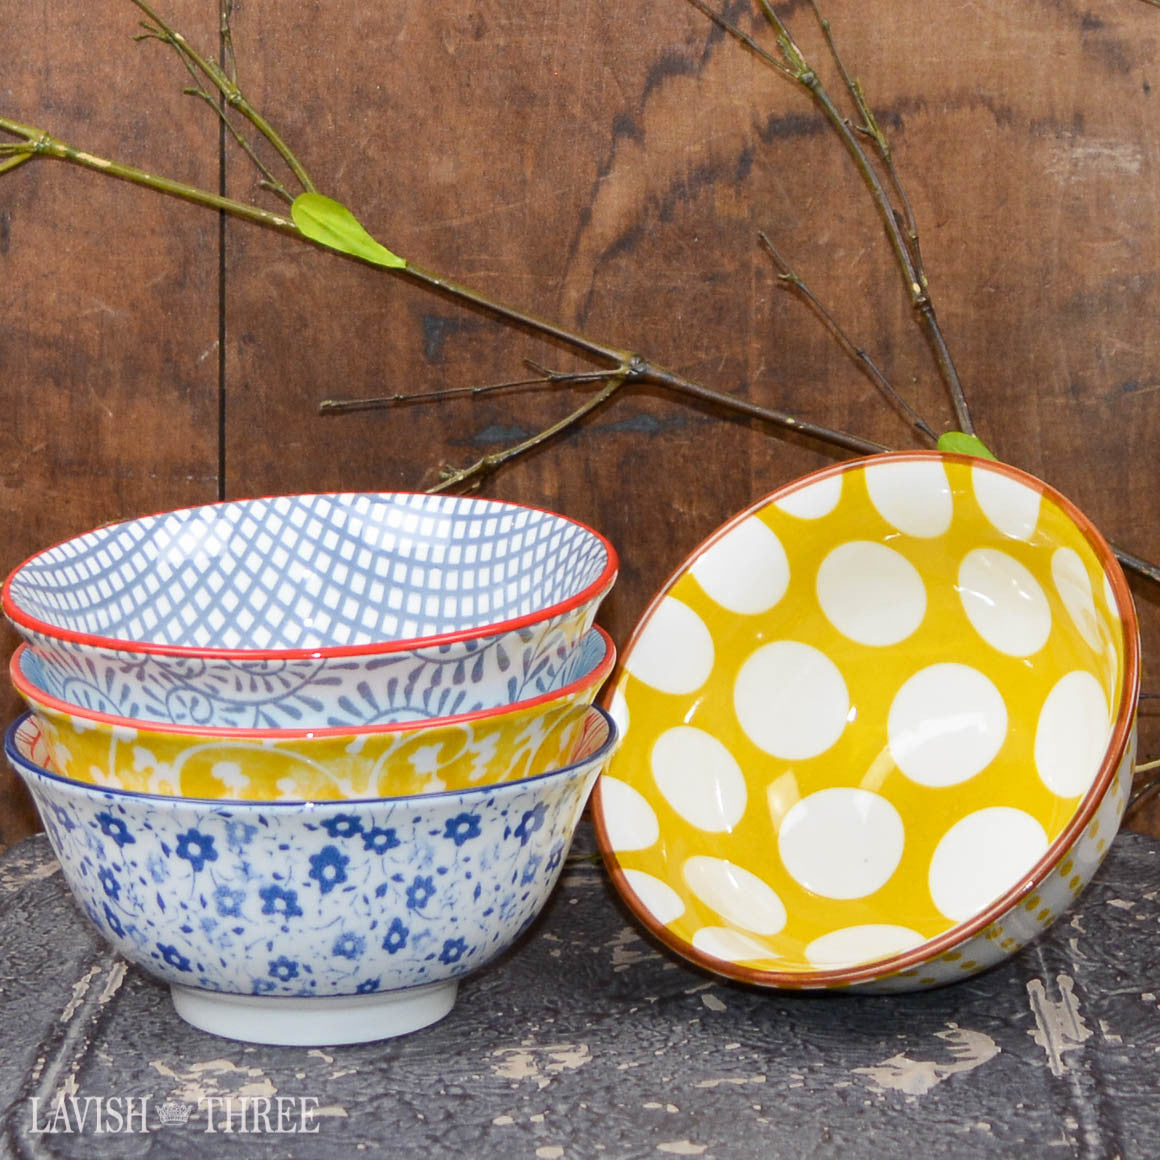 Printed eclectic bowls floral polka dot and pattern